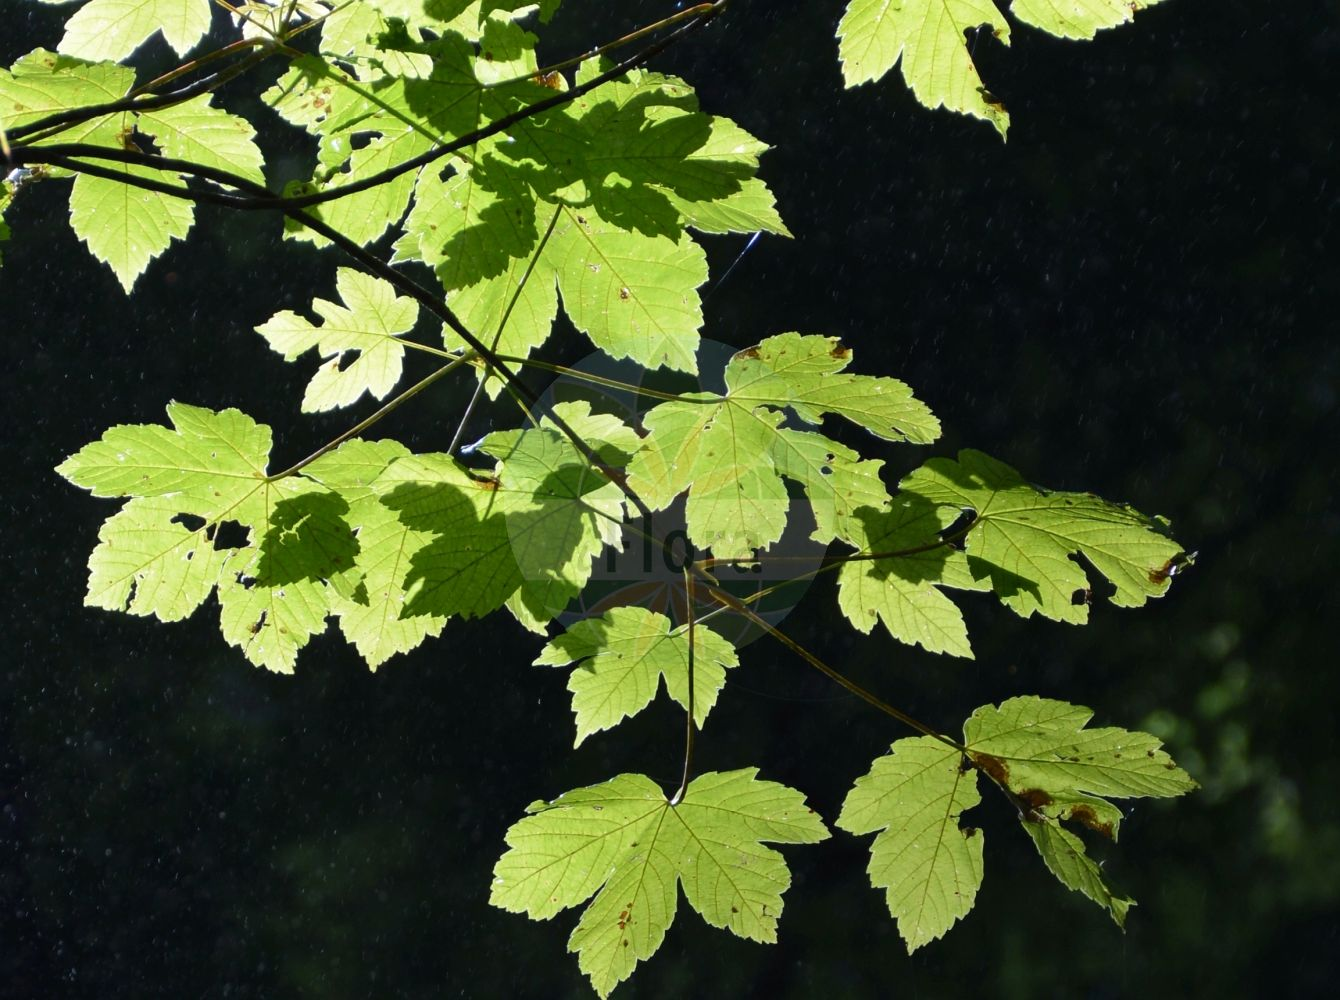 Foto von Acer pseudoplatanus (Berg-Ahorn - Sycamore). Das Foto wurde in Stans, Tirol, Österreich, Alpen aufgenommen. ---- Photo of Acer pseudoplatanus (Berg-Ahorn - Sycamore).The picture was taken in Stans, Tyrol, Austria, Alps. (Acer pseudoplatanus,Berg-Ahorn,Sycamore,Acer quinquelobum,Acer villosum,Trauben-Ahorn,Wald-Ahorn,Weiss-Ahorn,Common  Maple,Great Maple,Plane Maple,Acer,Ahorn,Maple,Sapindaceae,Seifenbaumgewaechse,Soapberry family)